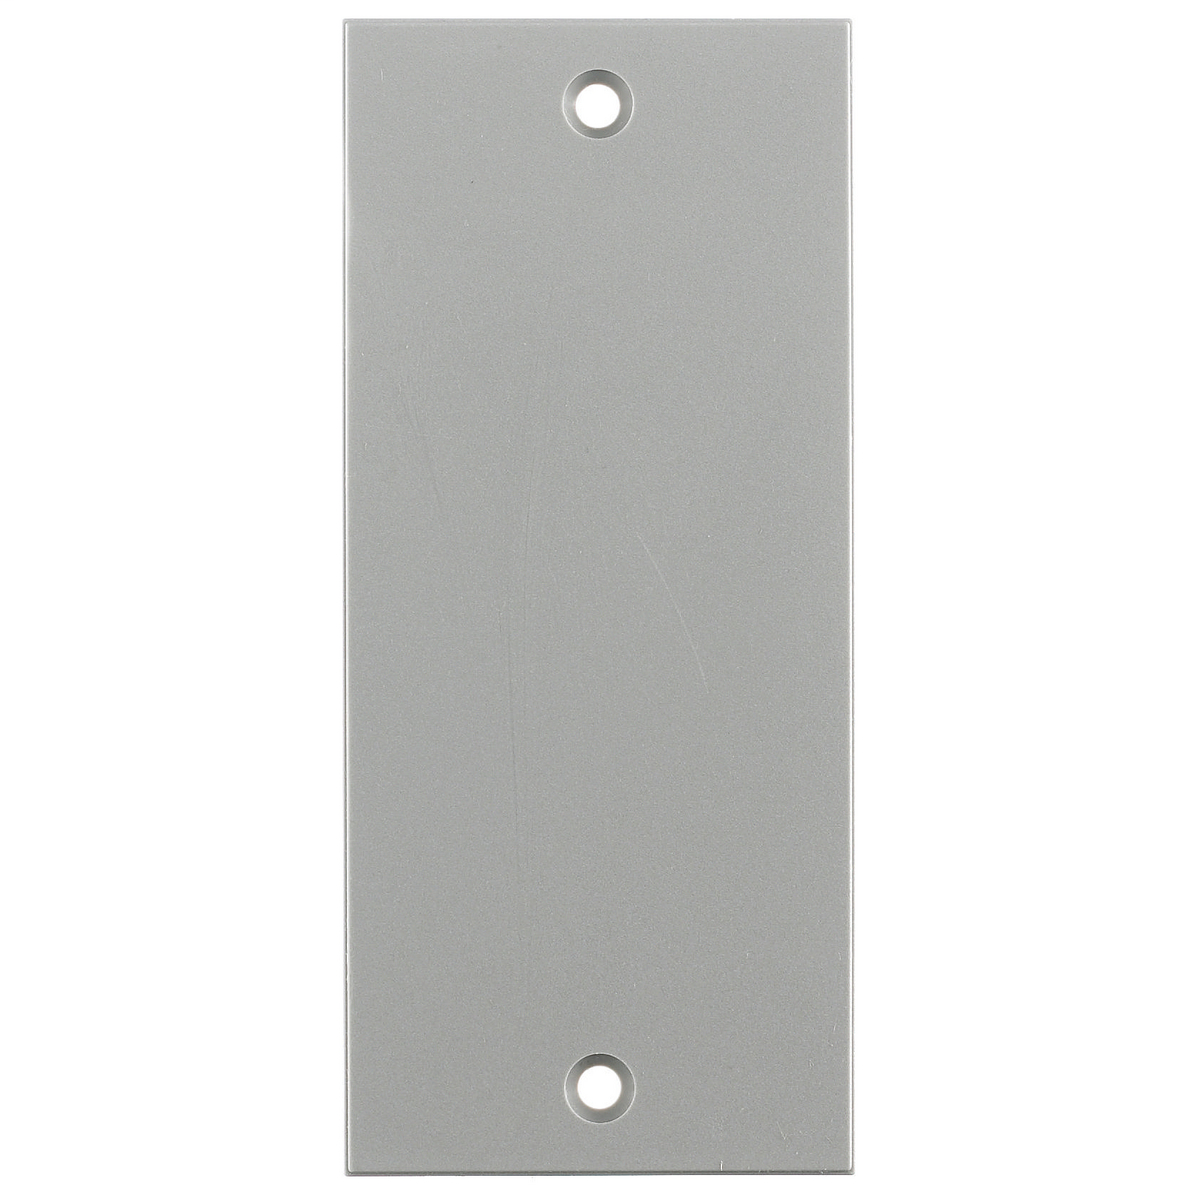 Hubbell Wiring Device Kellems, Floor and Wall Boxes, MULTI-CONNECTSystem, Face Plate, Screw Mount, Blank, Gray